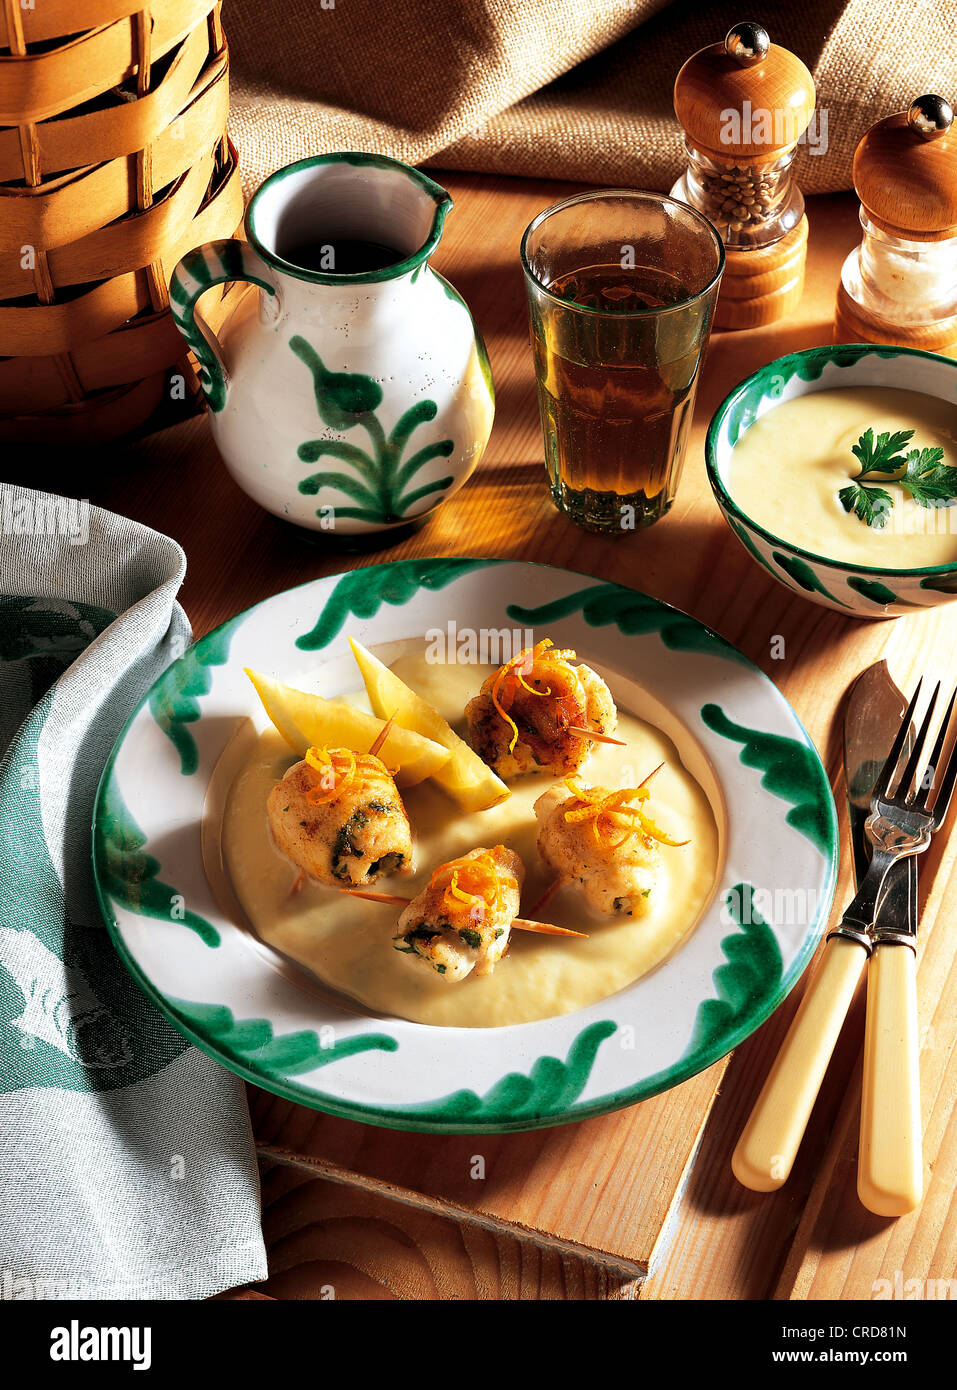 Andalusian fish rolls with sherry, sole fillets with parsley and orange peel, soaked in olive oil, Spain - Stock Image